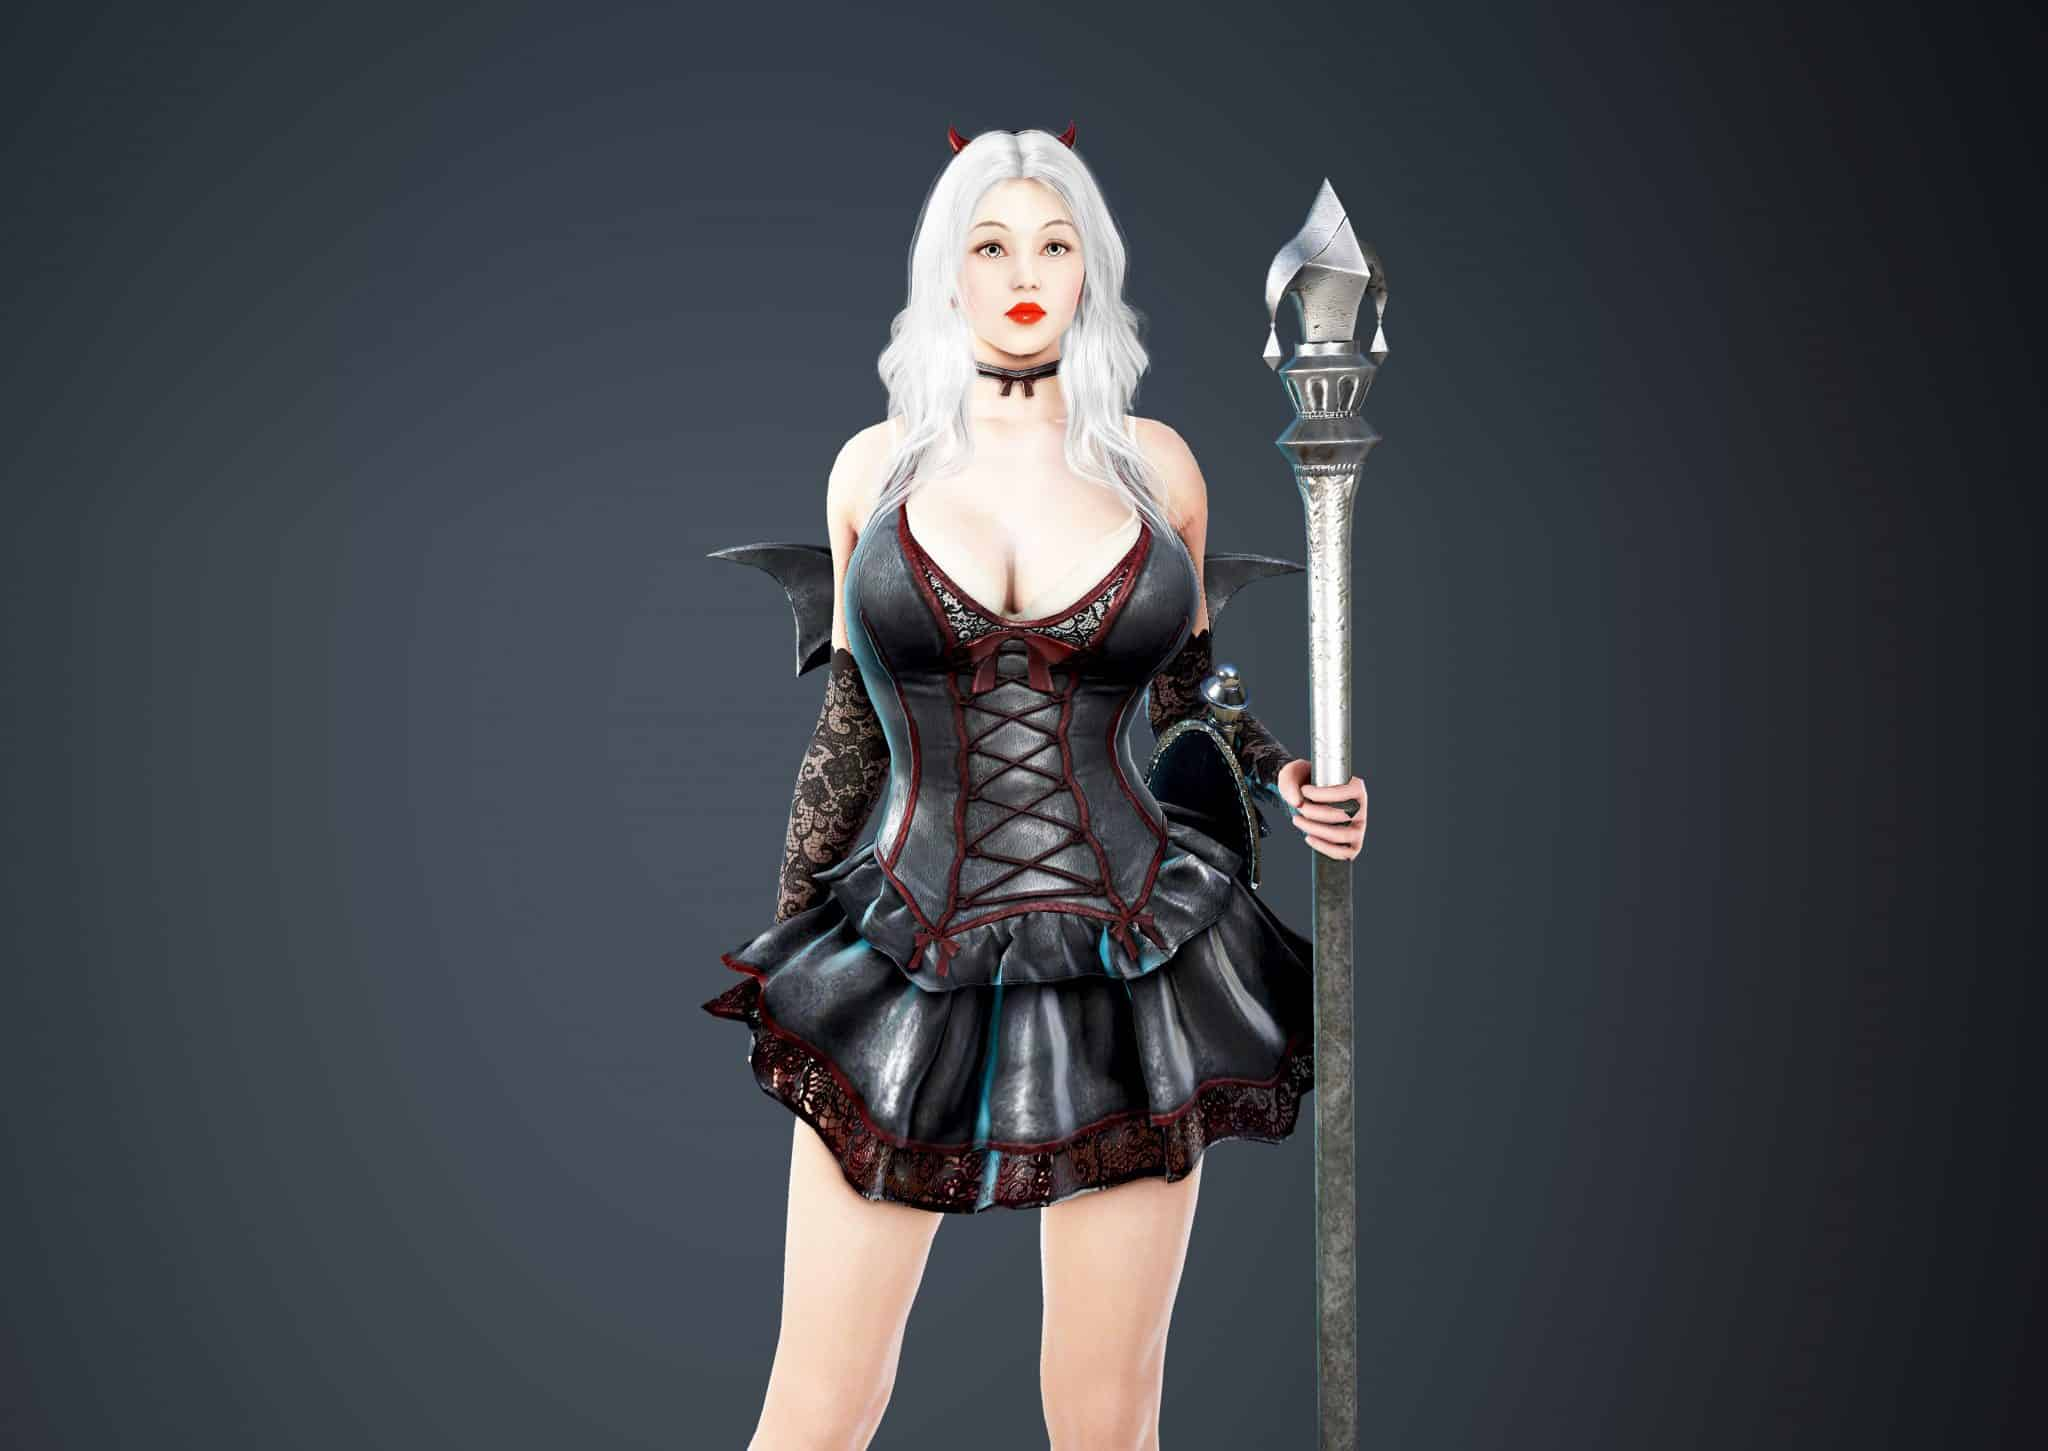 Witch Bloody Dress, Bloody Outfit Set, Halloween 2018, Black Desert Online